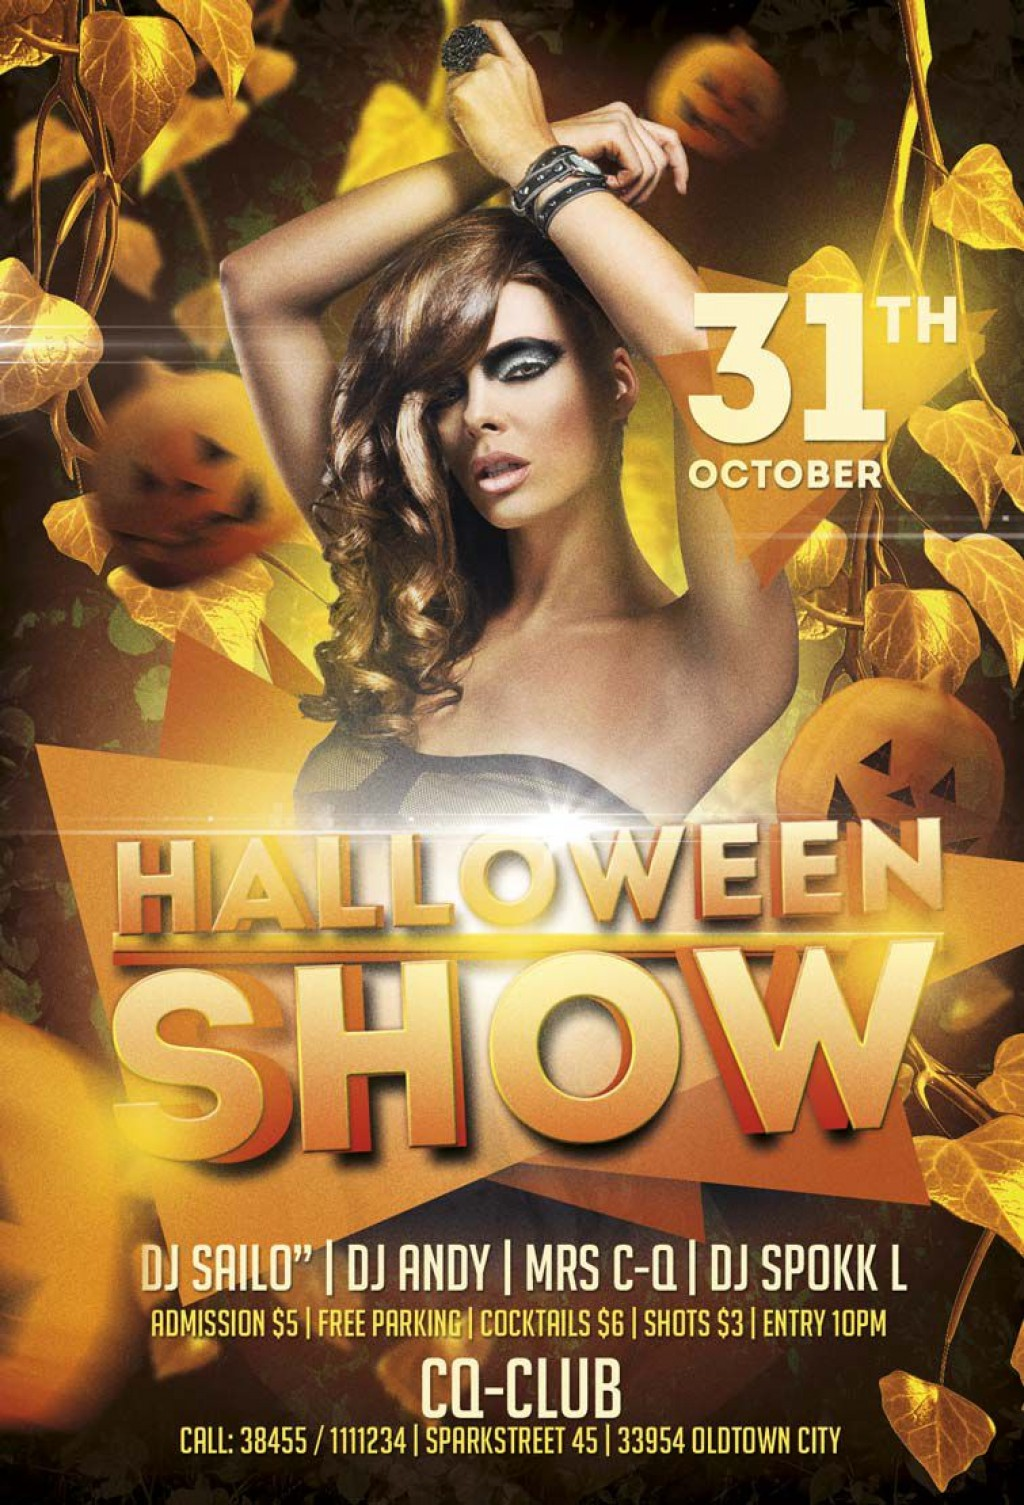 005 Striking Free Halloween Party Flyer Template Image  TemplatesLarge